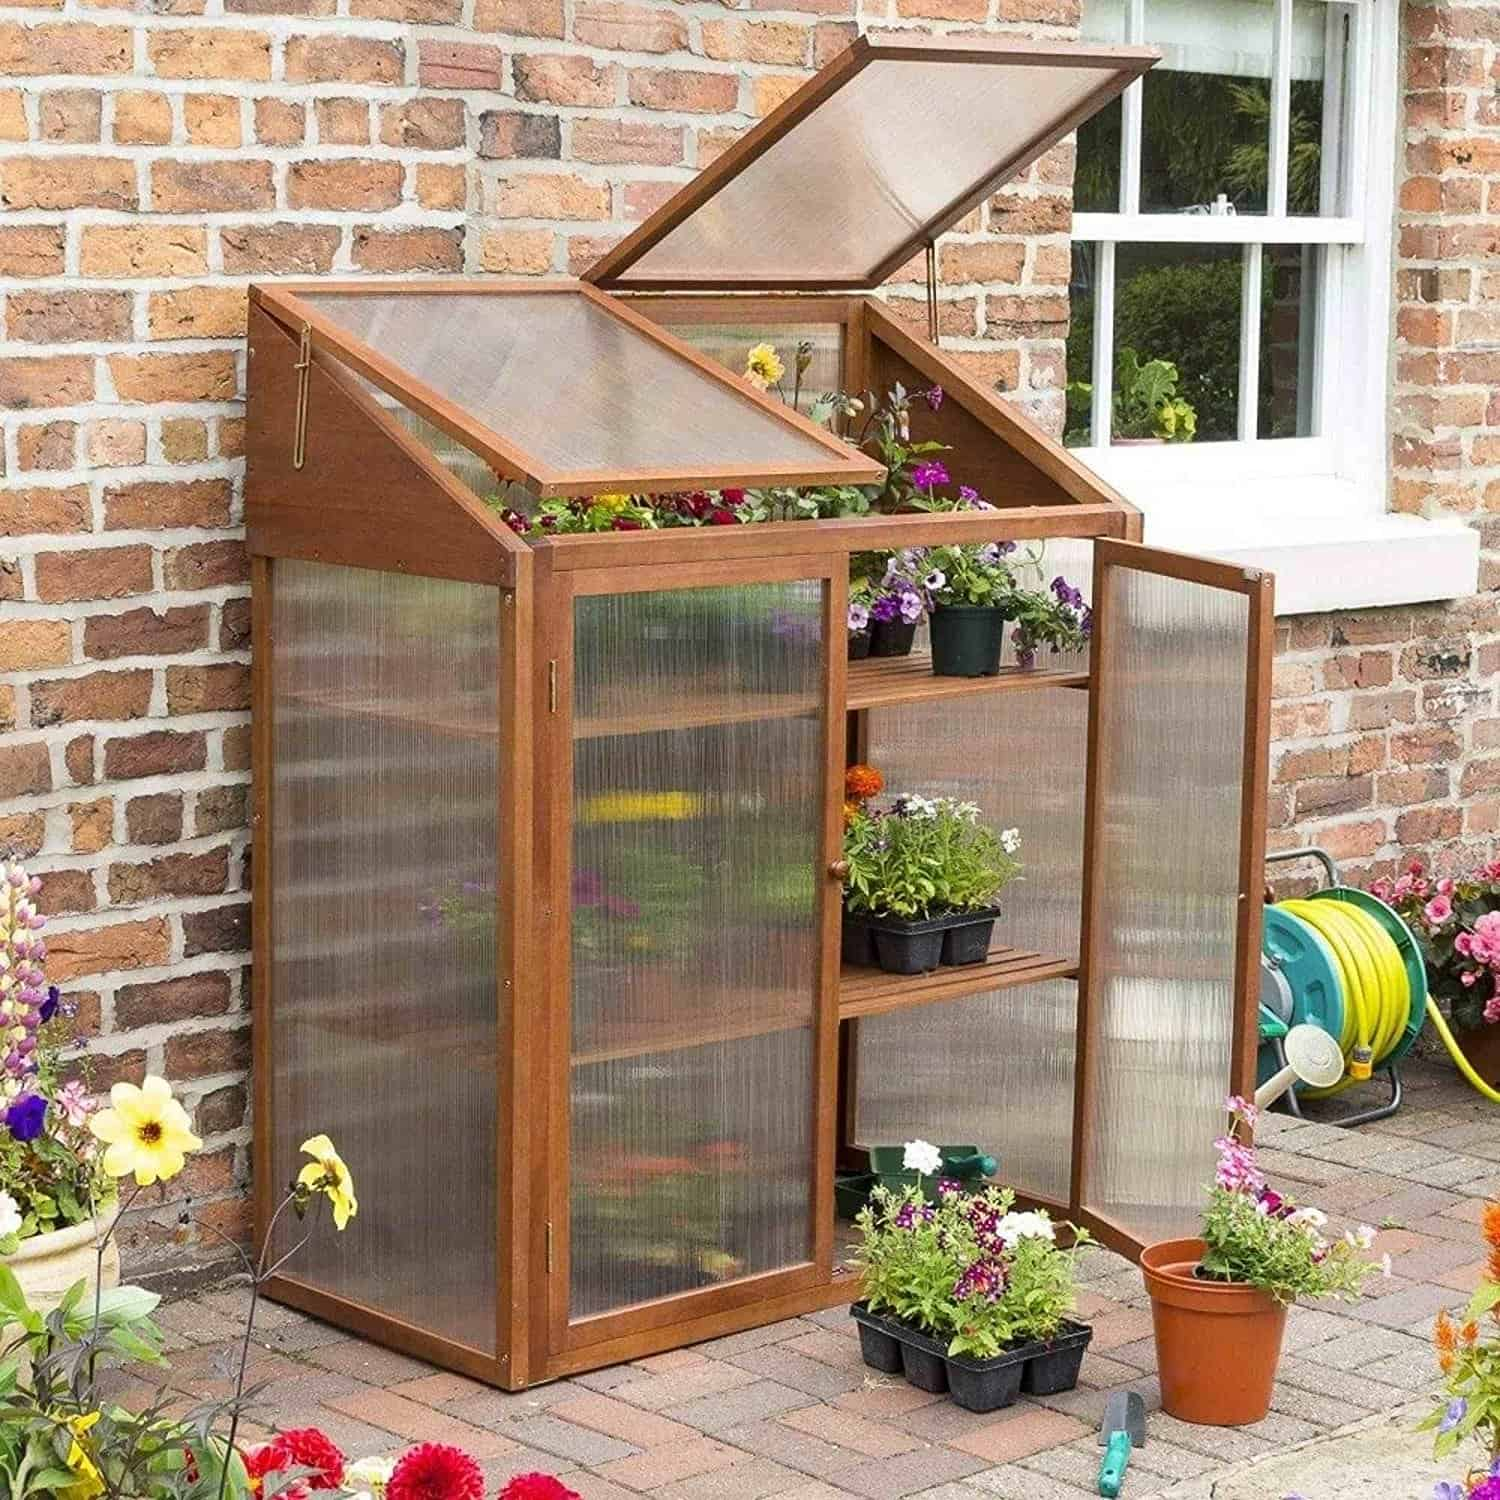 Best Small Greenhouse – Rowlinson Hardwood Mini Greenhouse